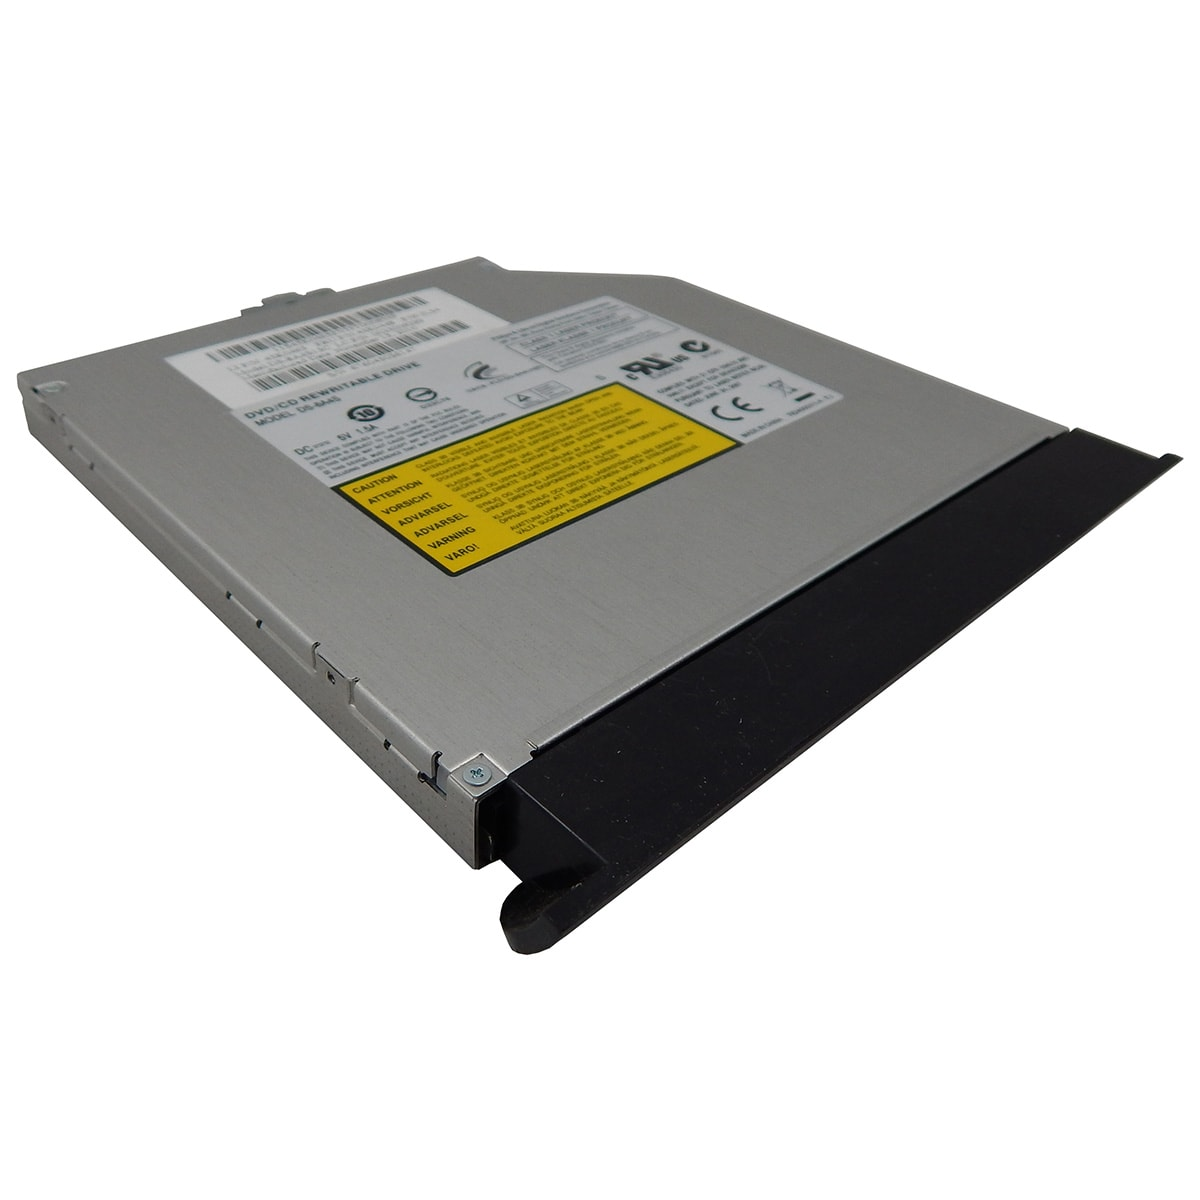 Driver CD/DVD Philips p/ Notebook Model DS-8A4S P/N 45K0463 F/W: JL34